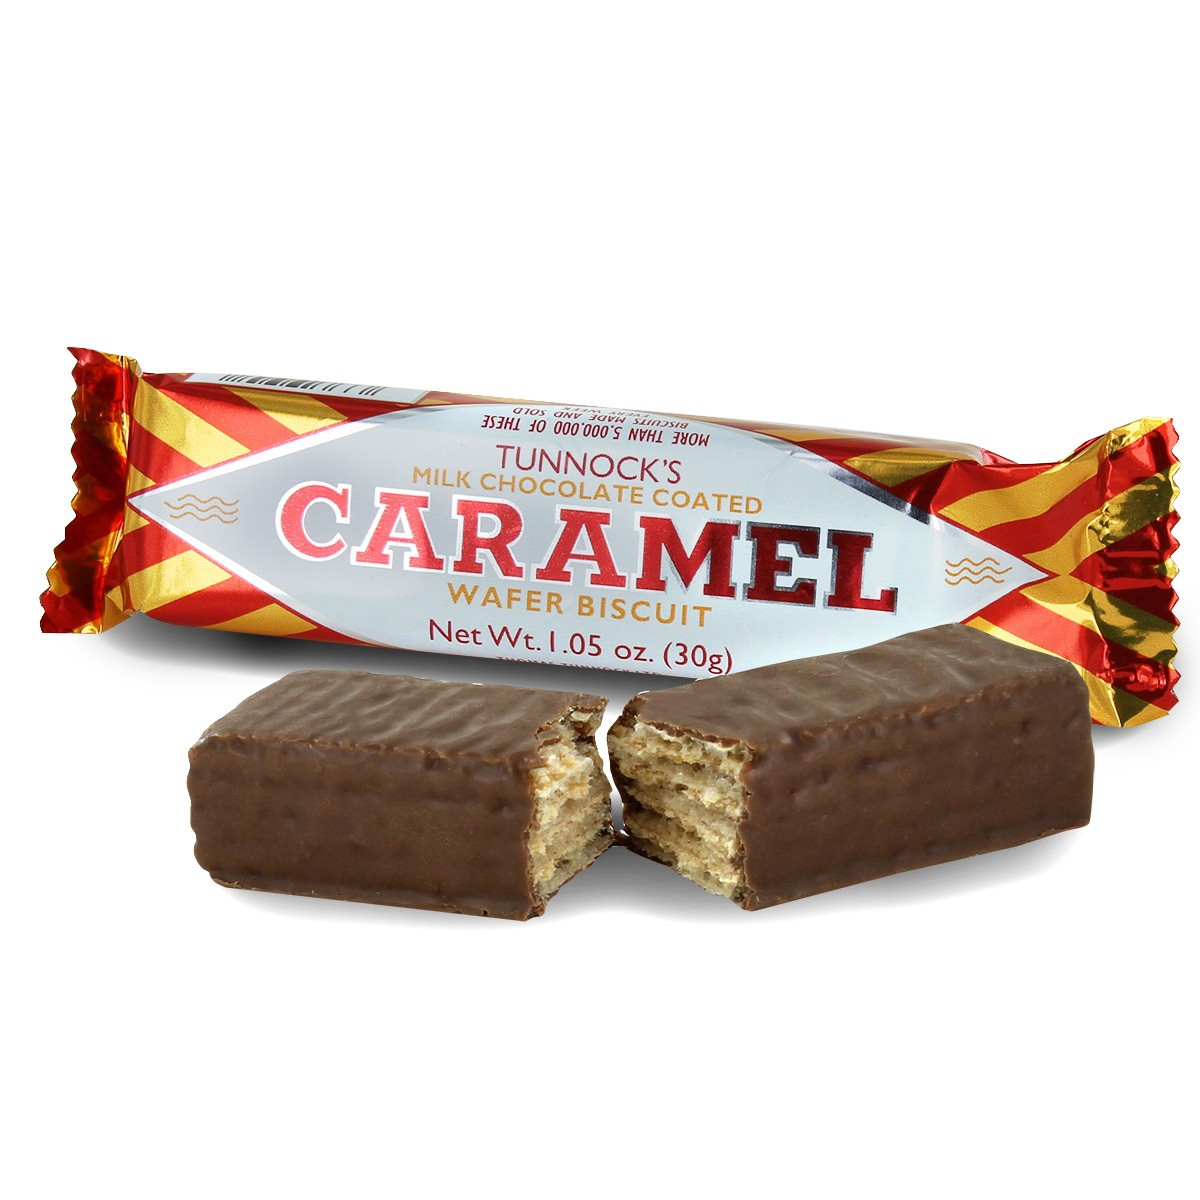 TunnockのCARAMEL WAFERの画像